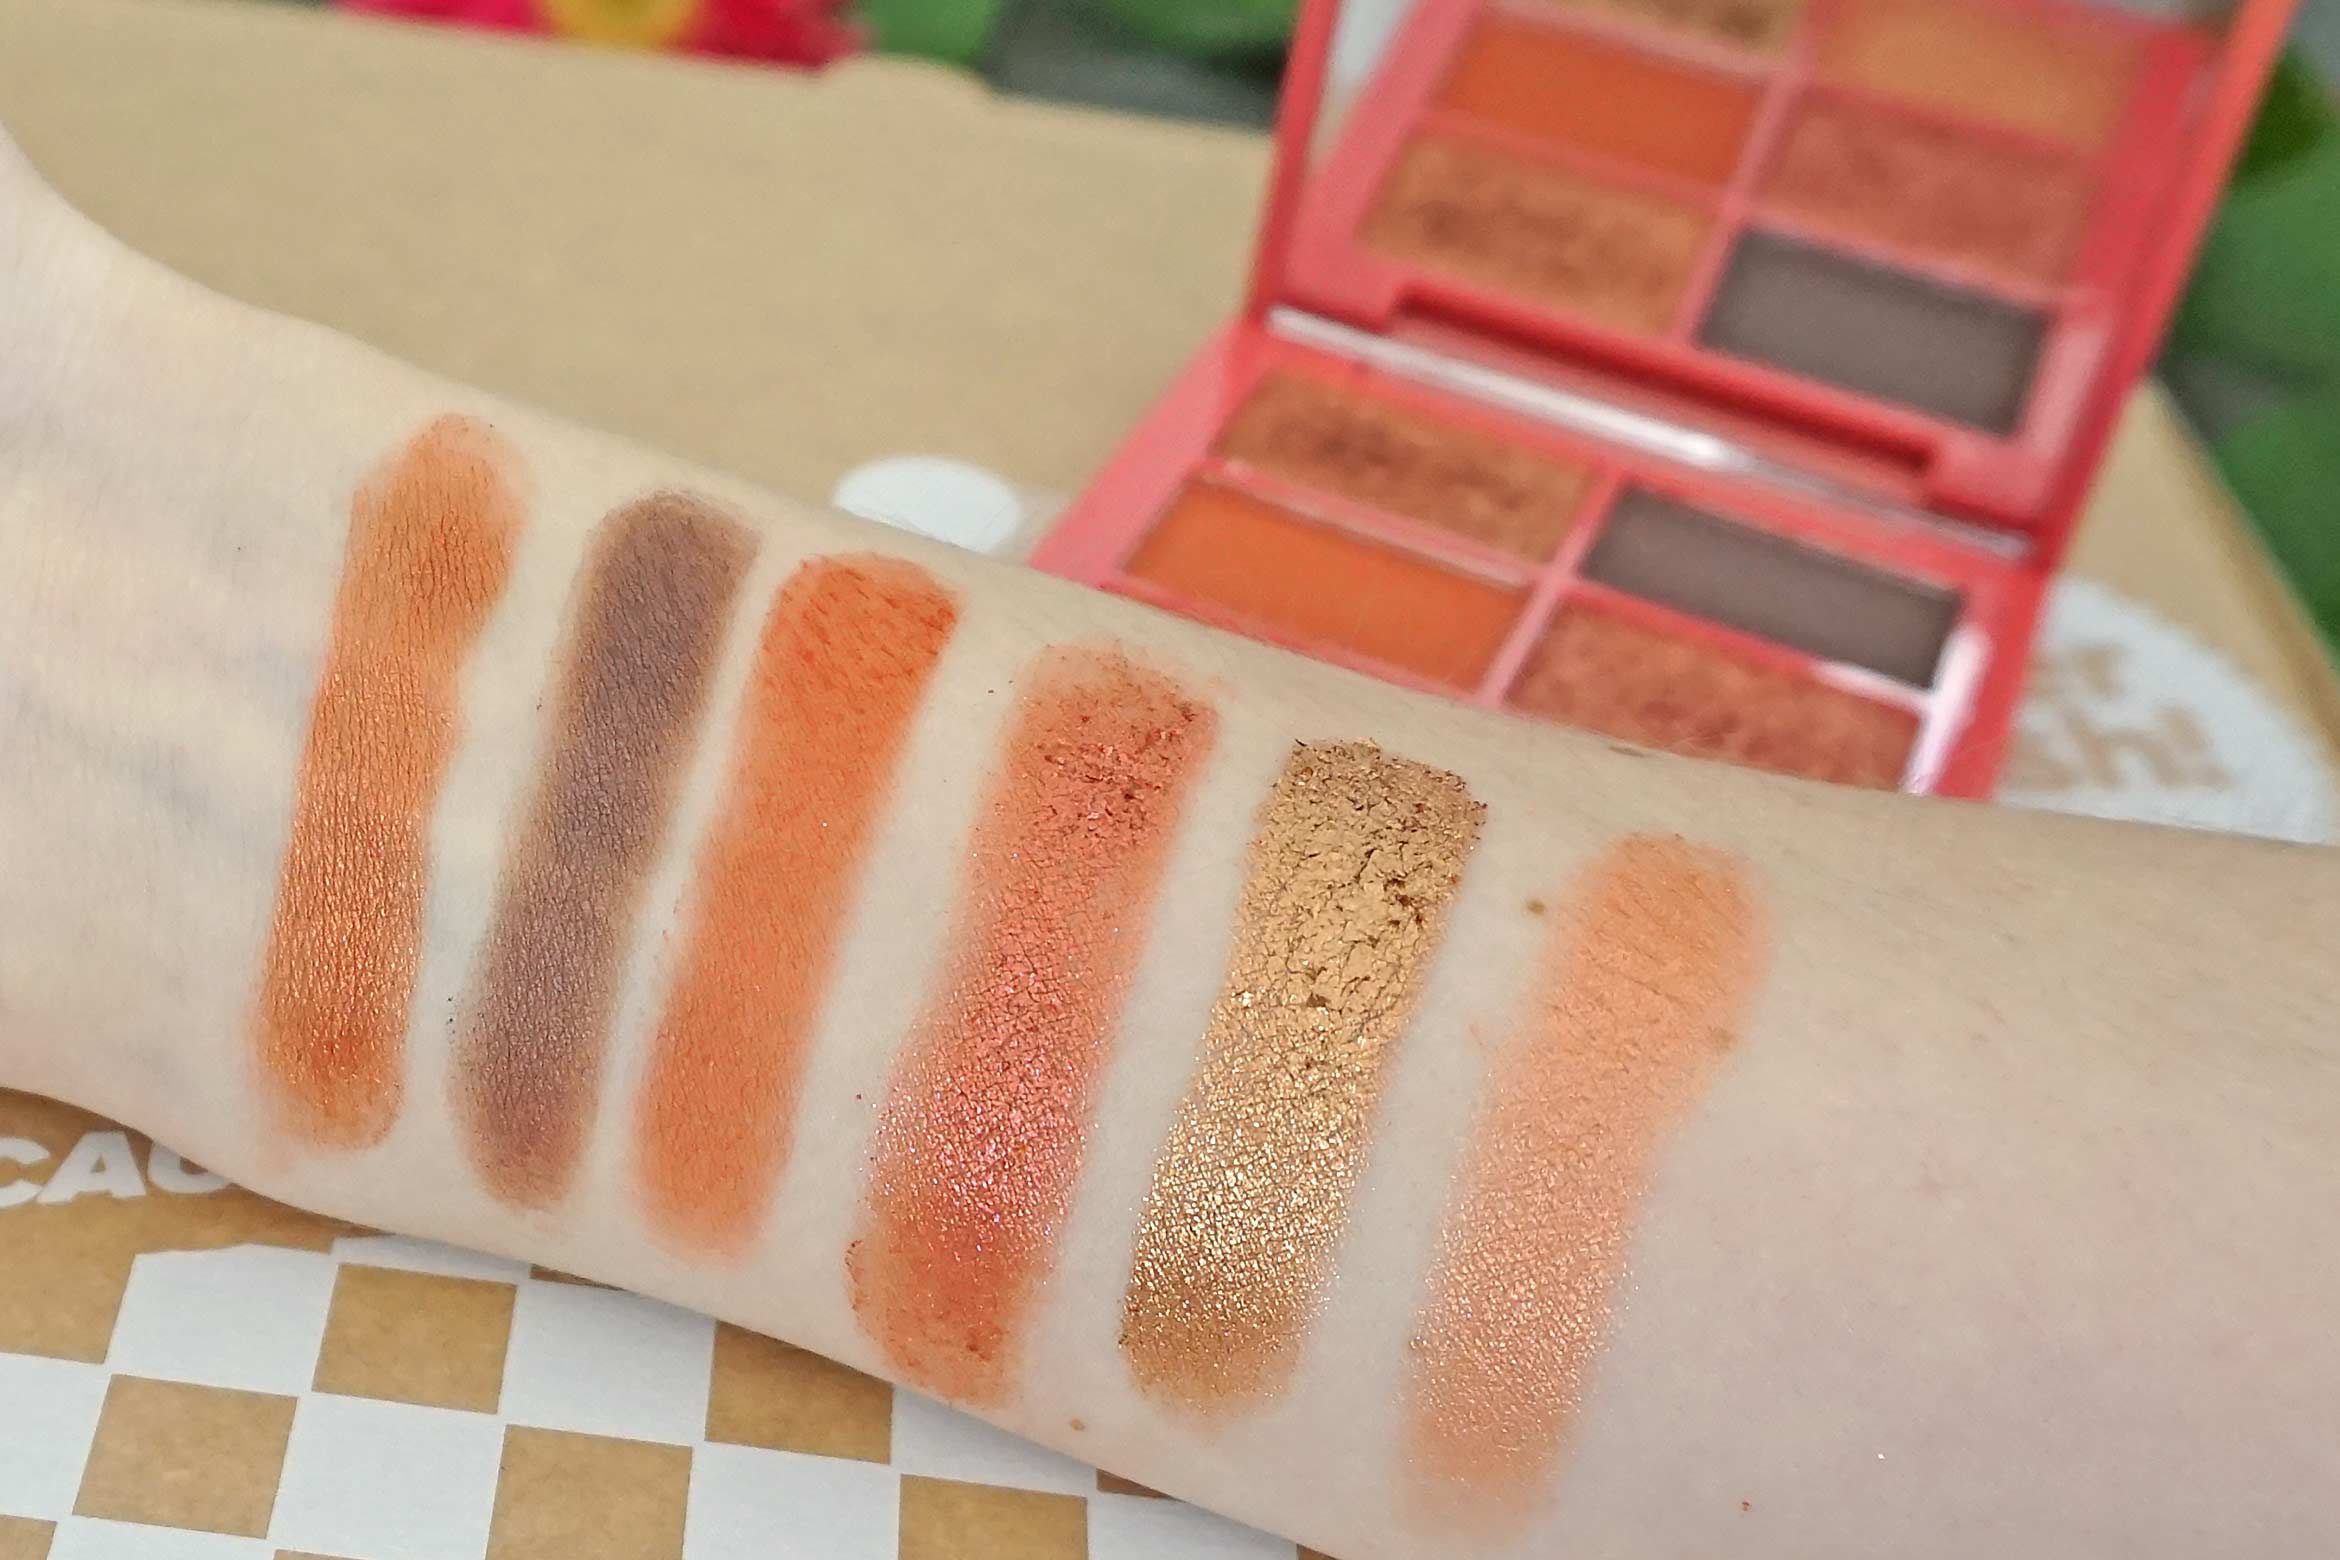 lottie london x laila loves eyeshadow palette swatches sahara review